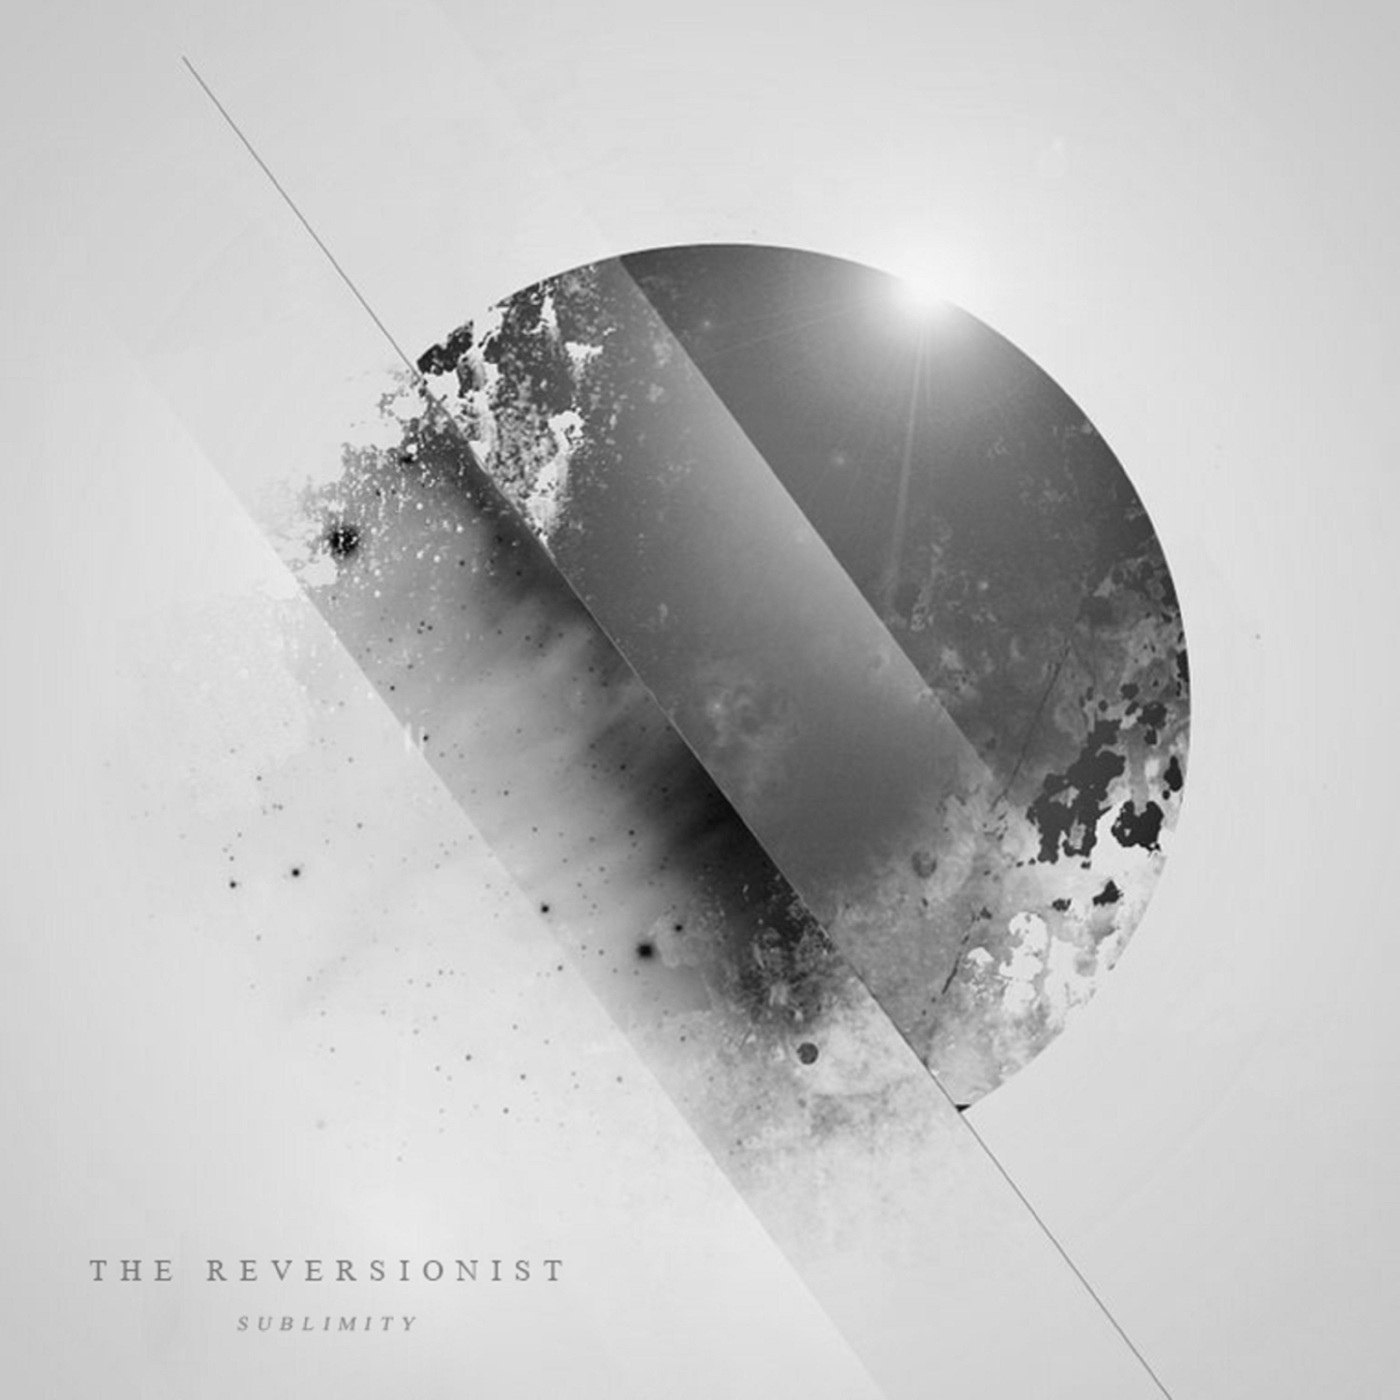 The Reversionist - Sublimity (2018)